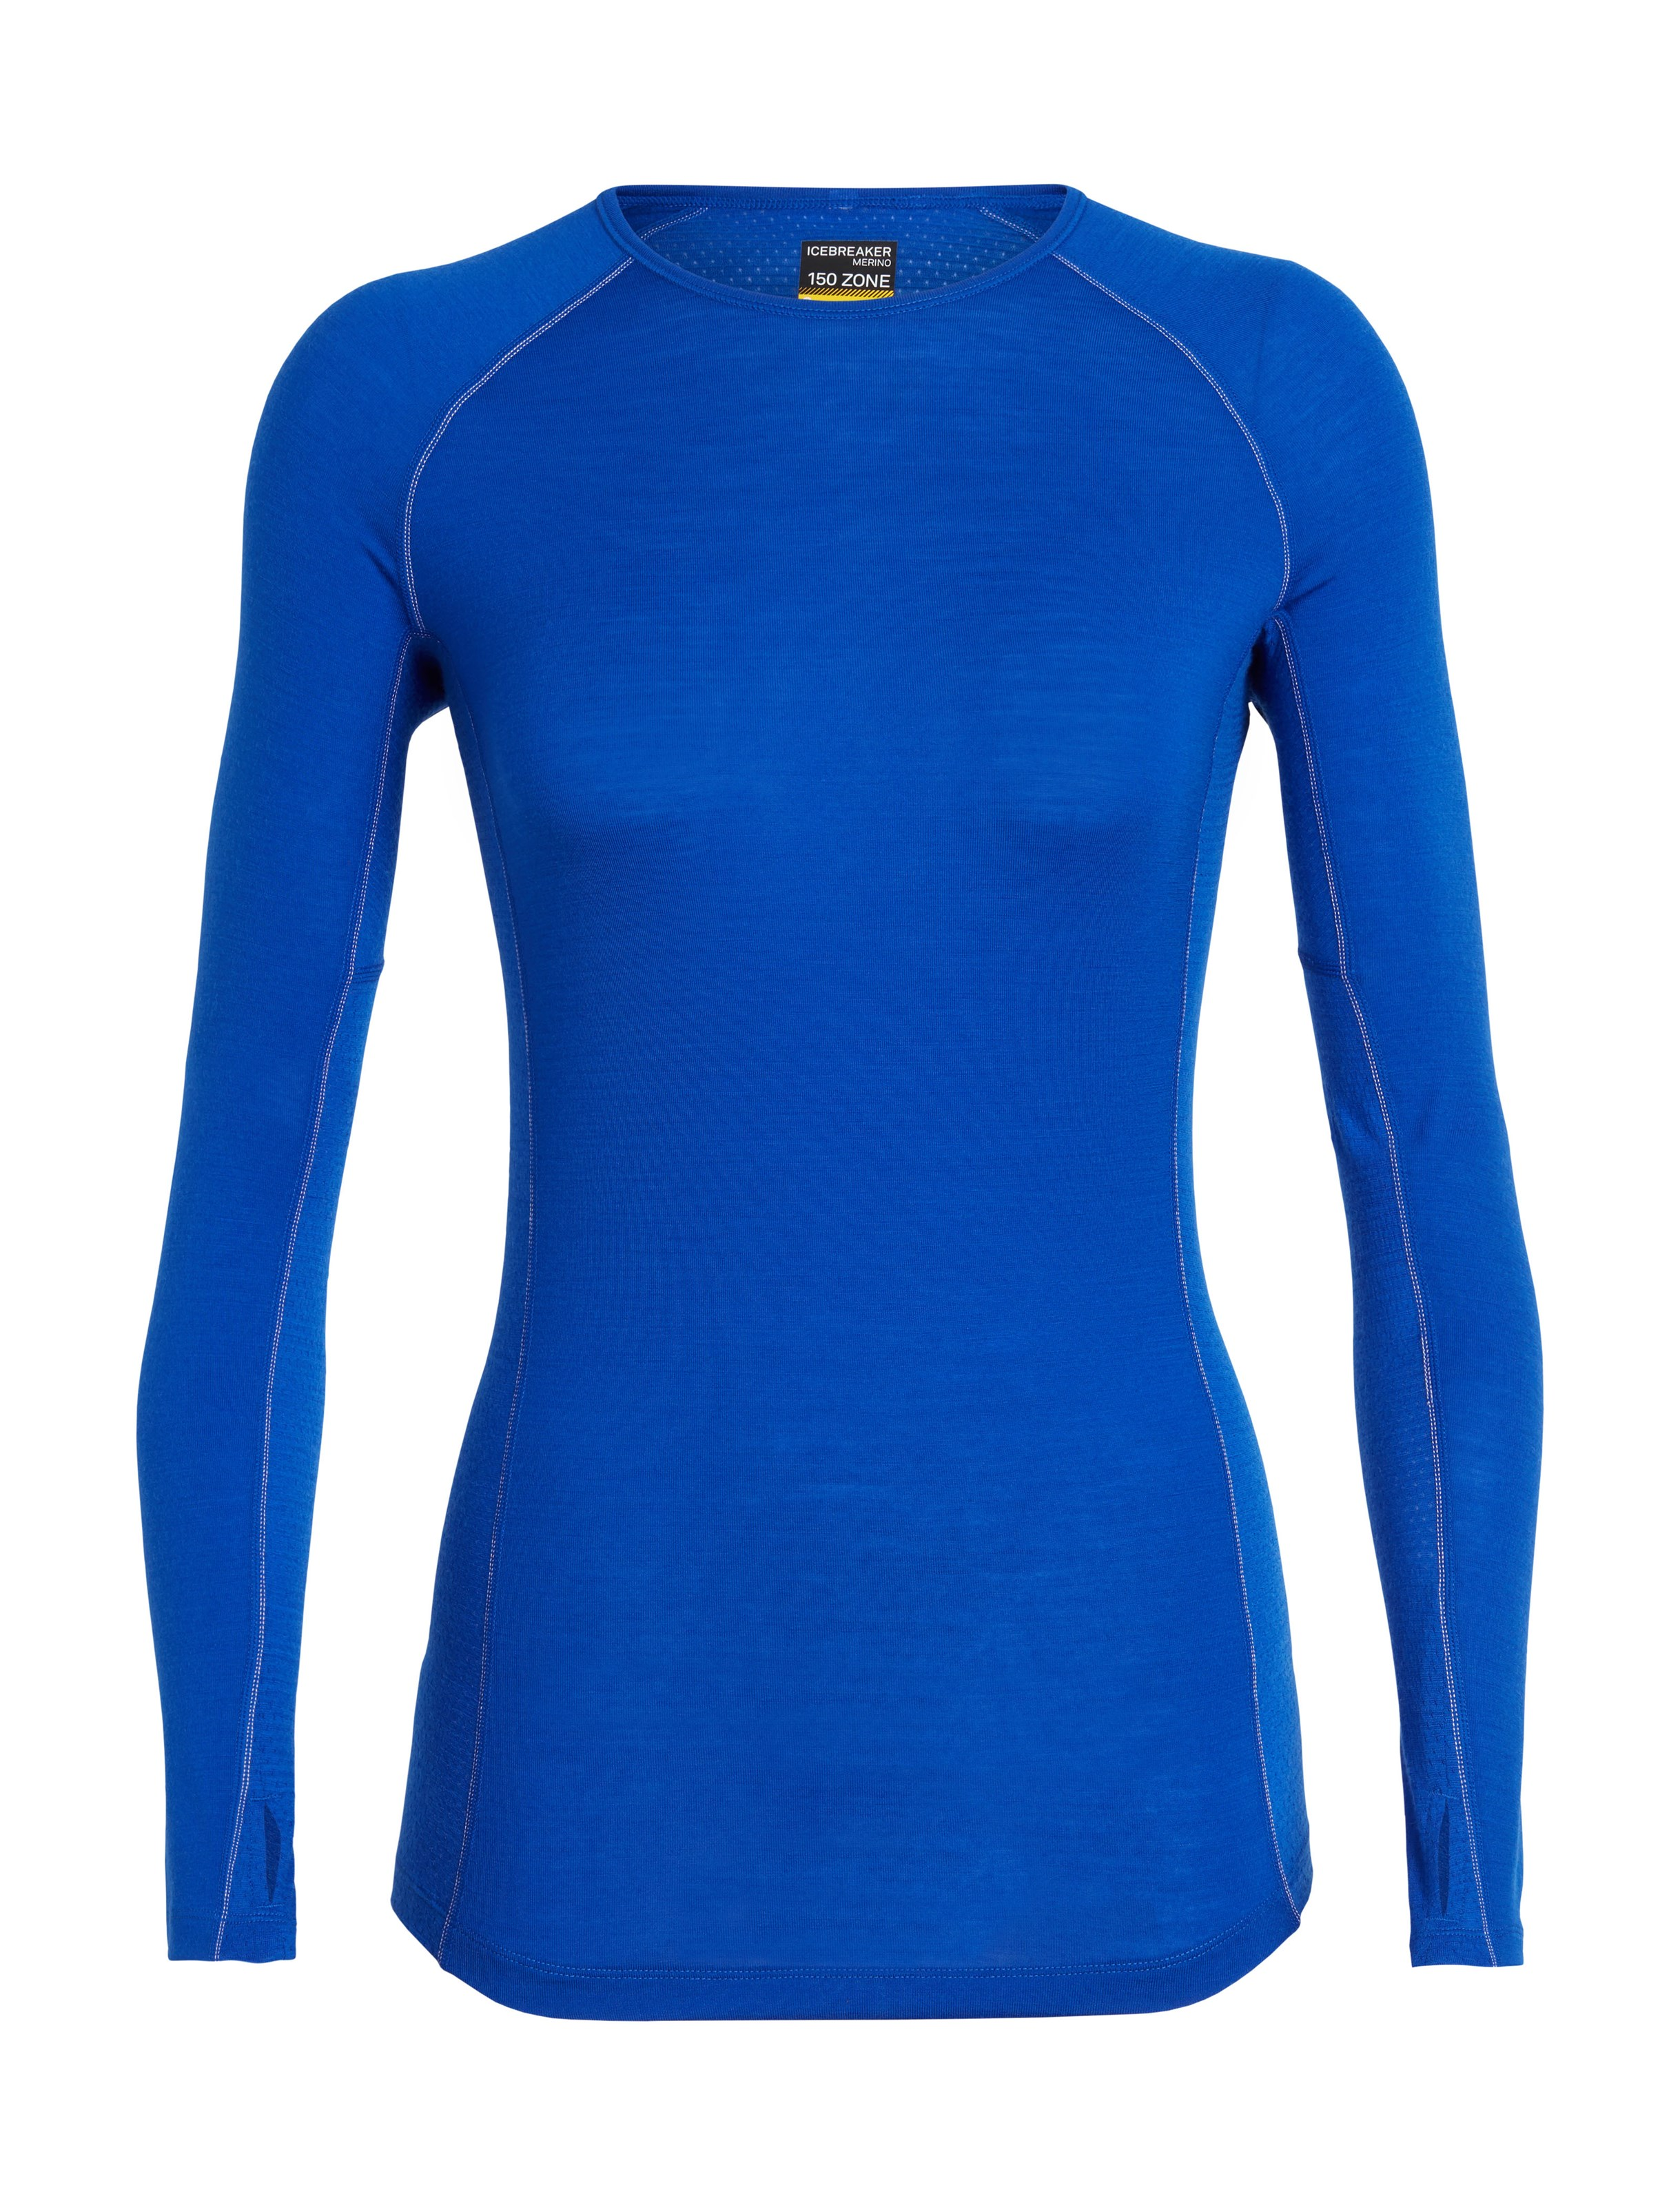 SS19-BASELAYER-WOMEN-150-ZONE-LS-CREWE--104331403_1.jpg